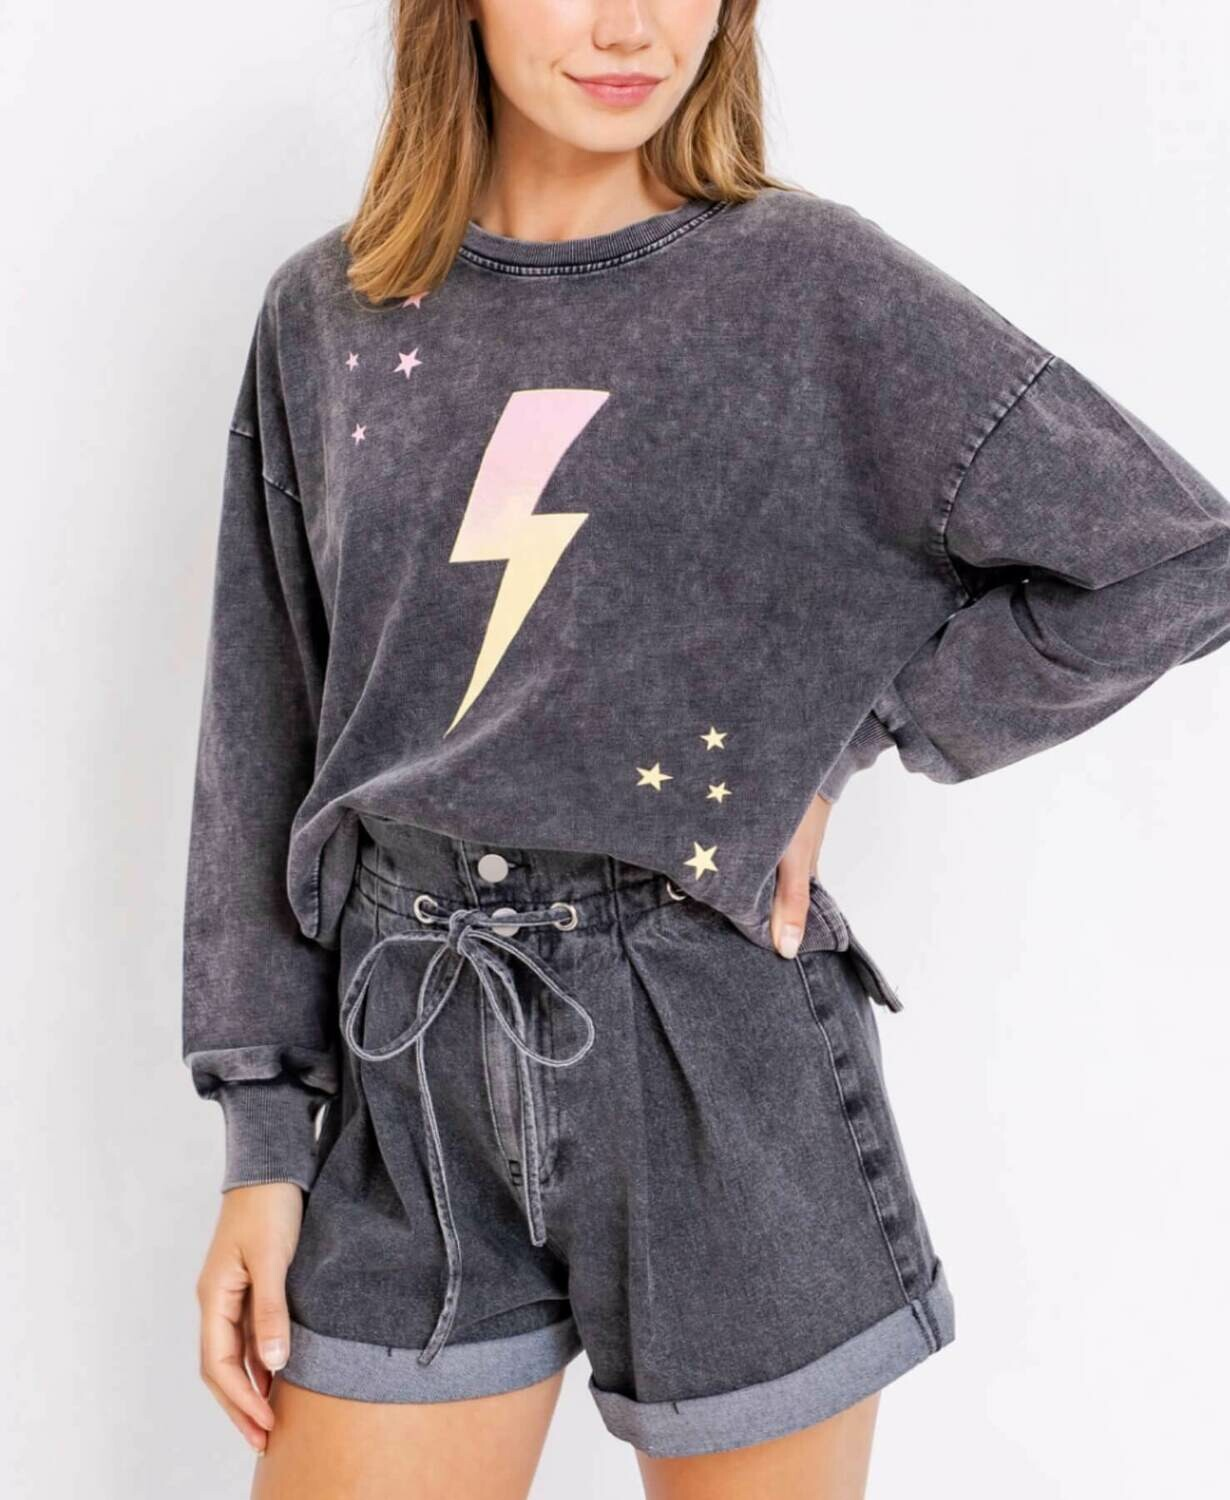 Bolt sweatshirt